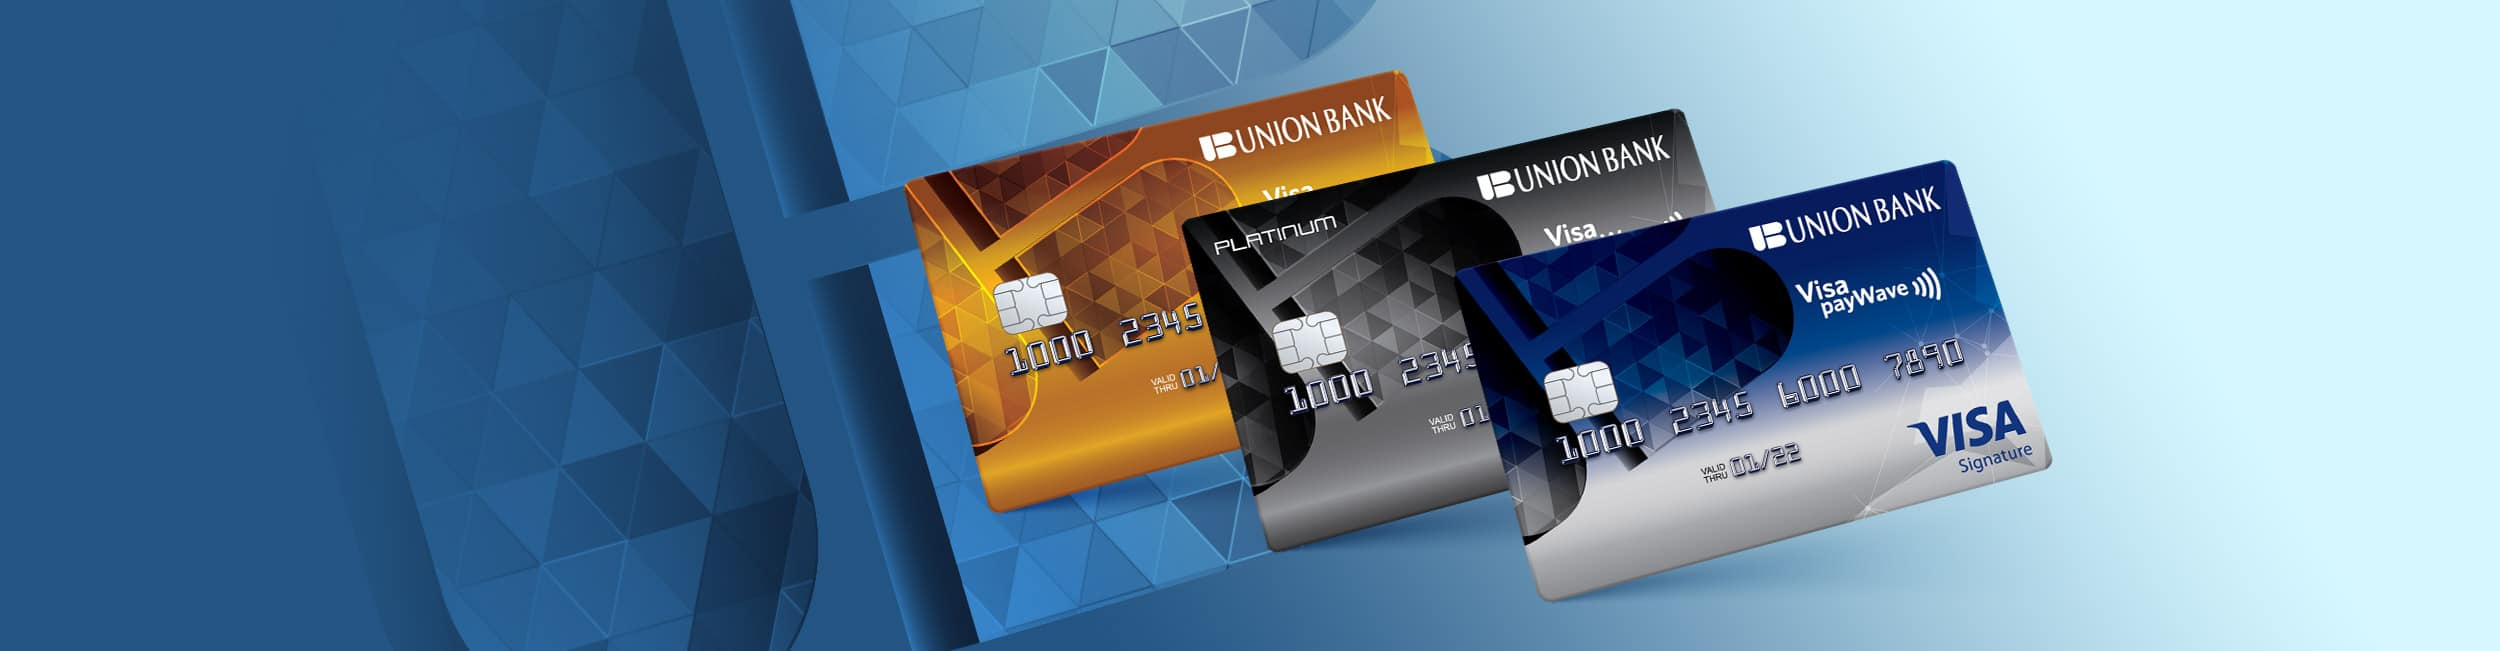 union-bank-credit-cards